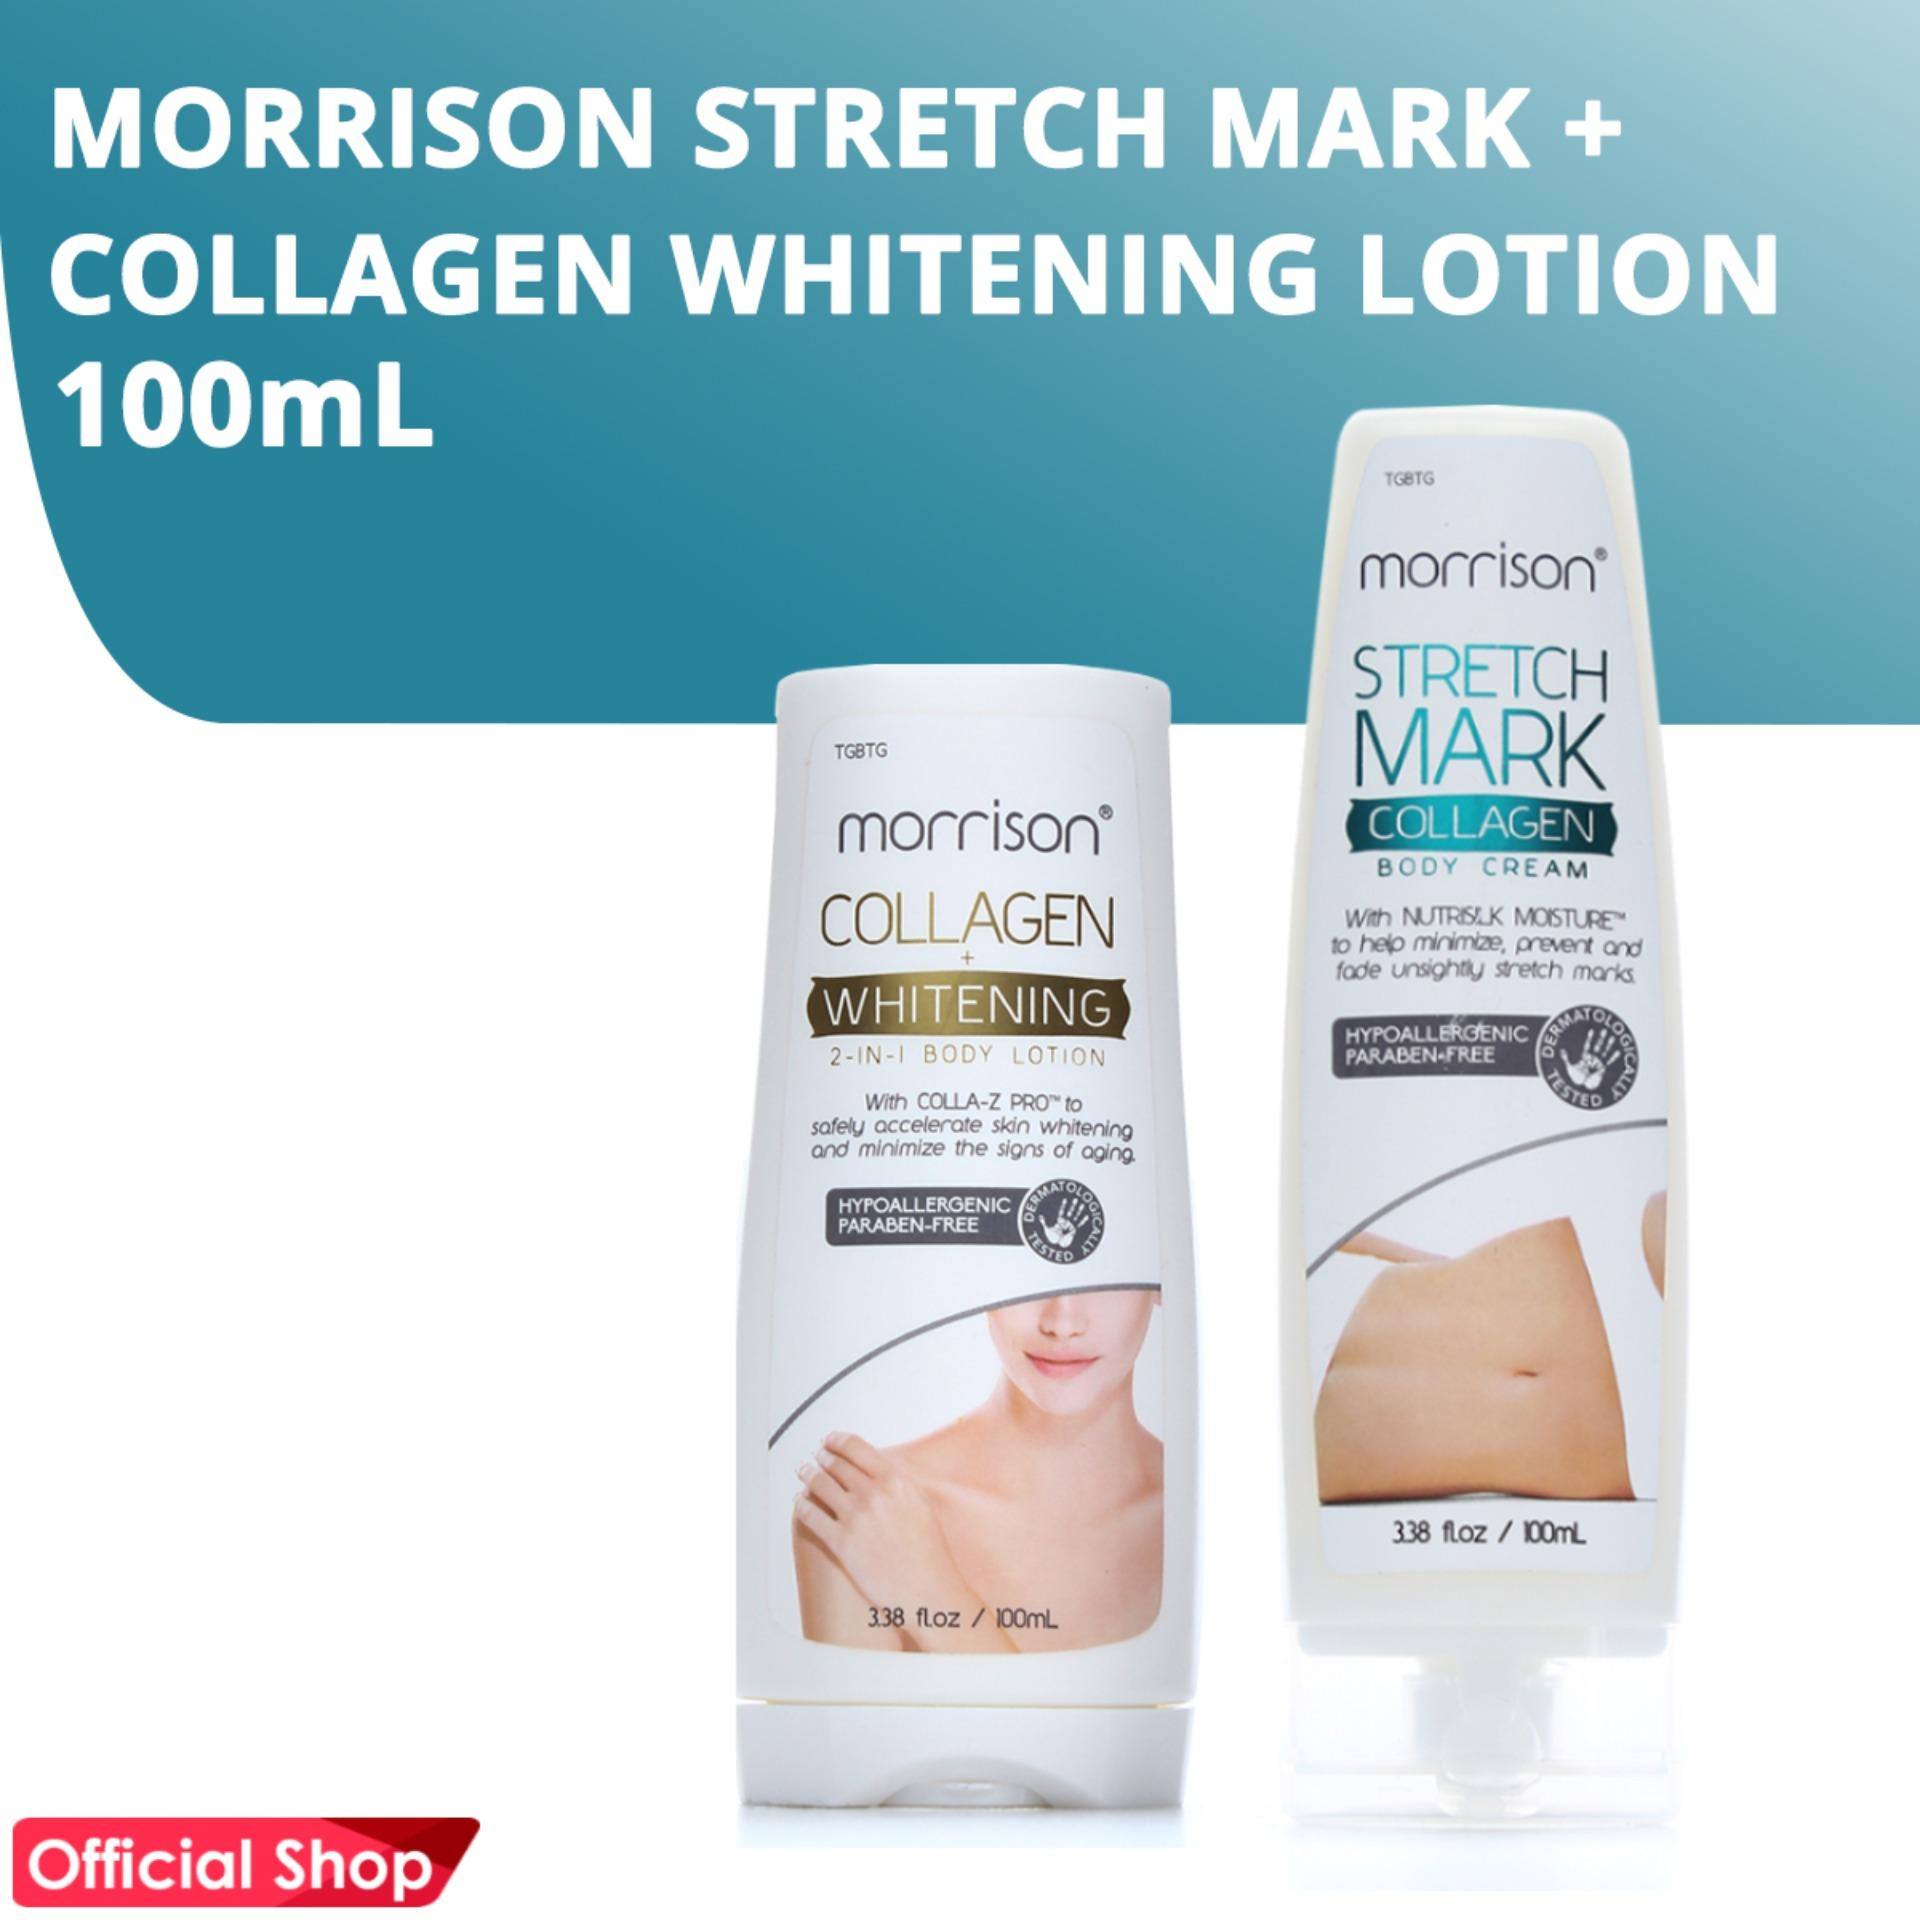 Body Creams Brands Moisturizers On Sale Prices Set Citra Hand Lotion Nourished Radiance 250ml Morrison Stretch Mark Collagen Cream Whitening 2 In 1